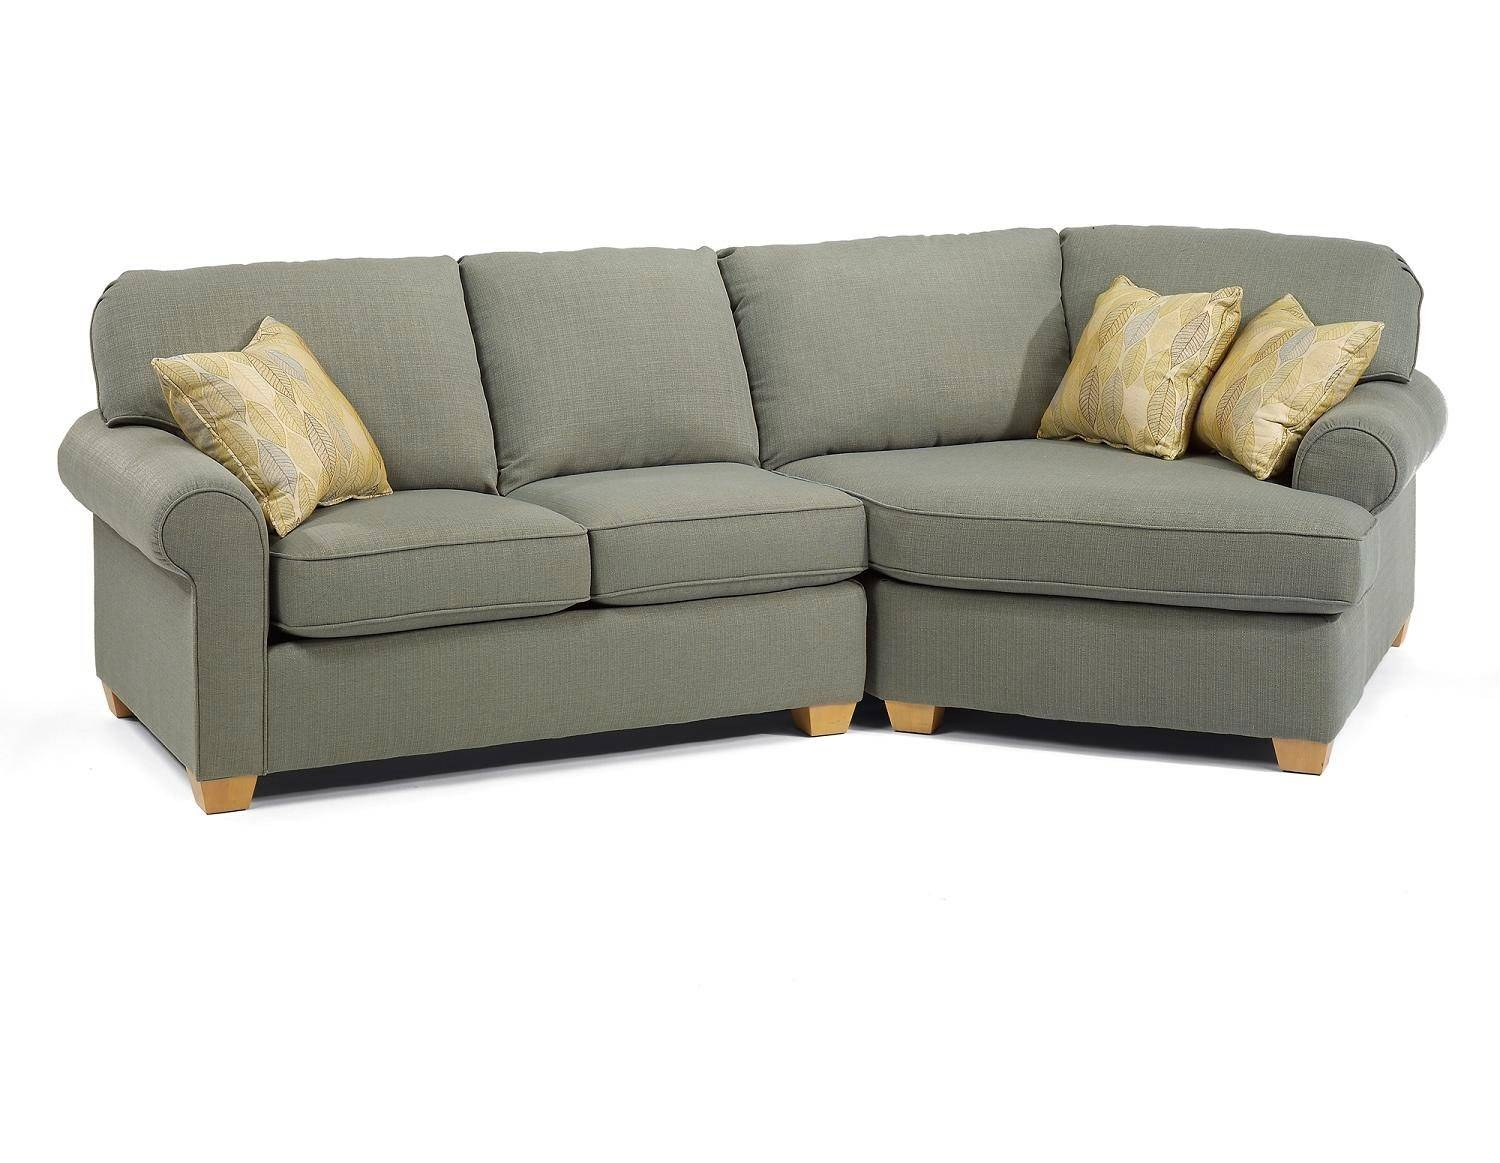 Small Sectional Sofa | Small Sectional Sofa Basement - Youtube for Condo Sectional Sofas (Image 25 of 30)